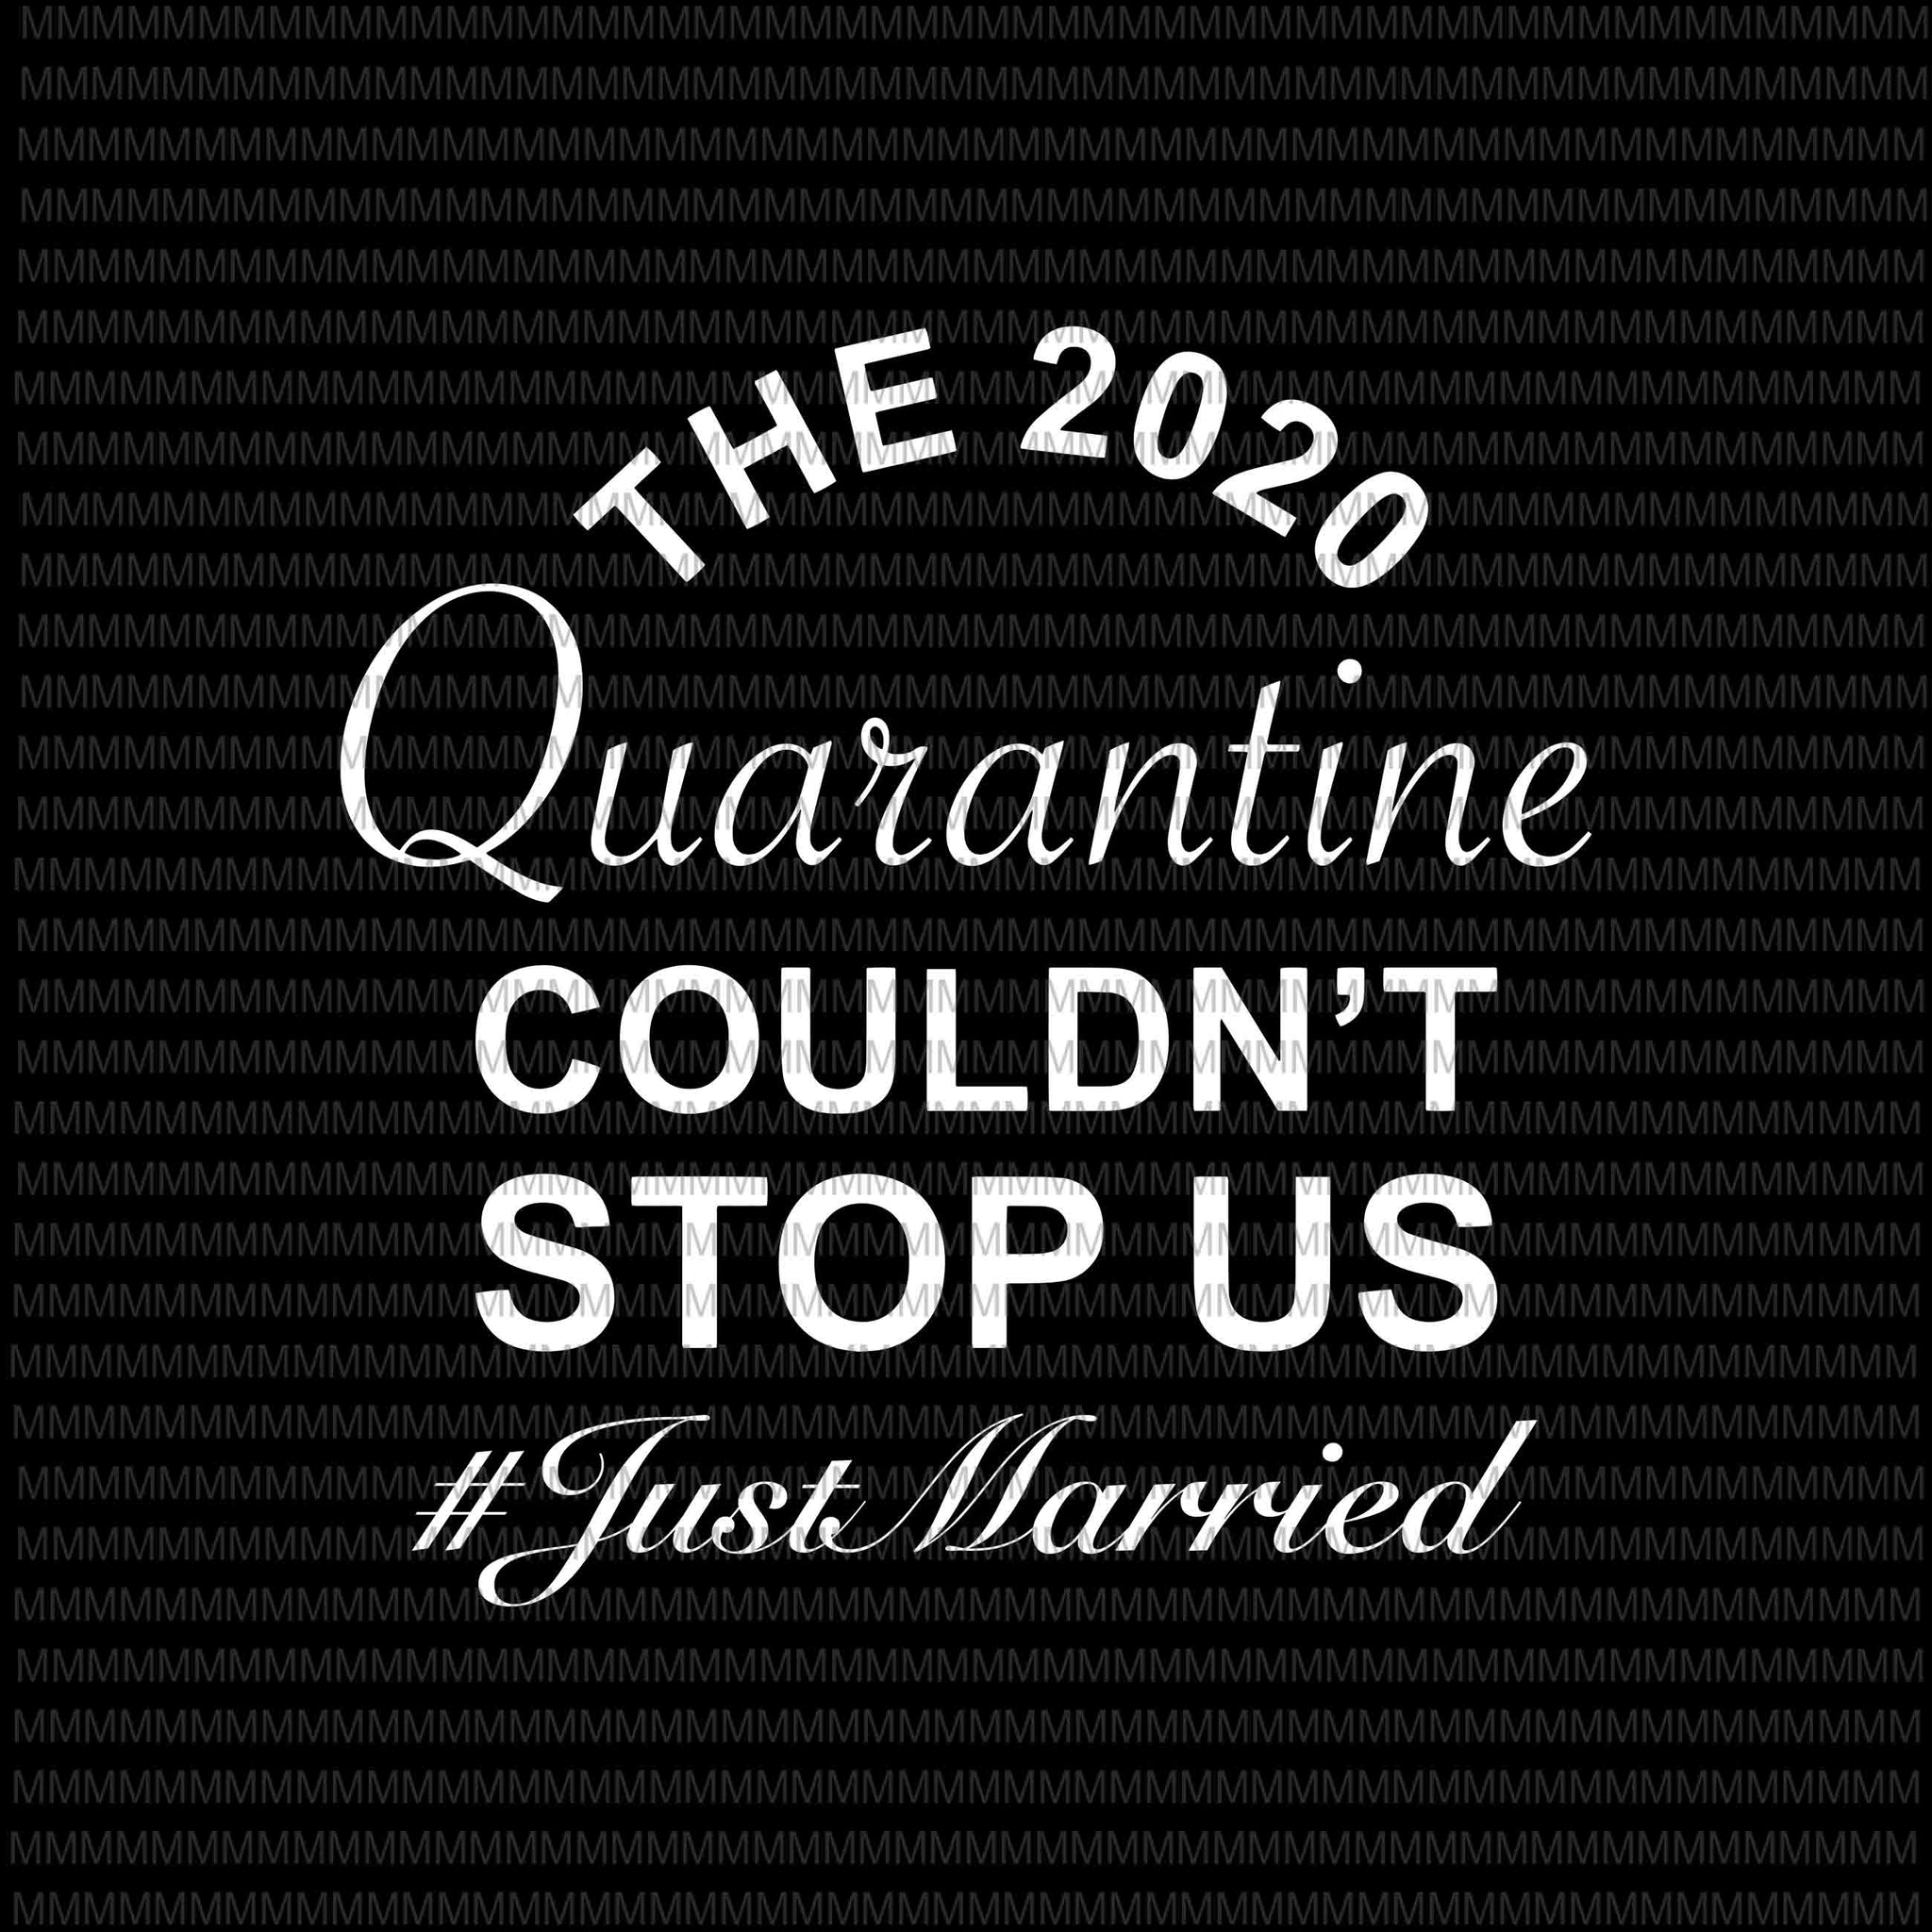 The 2020 Quarantine Couldn't Stop Us Just Married svg, Elections 2020 Design, President 2020, funny quote svg, The 2020 Quarantine svg, png, dxf, eps, ai file